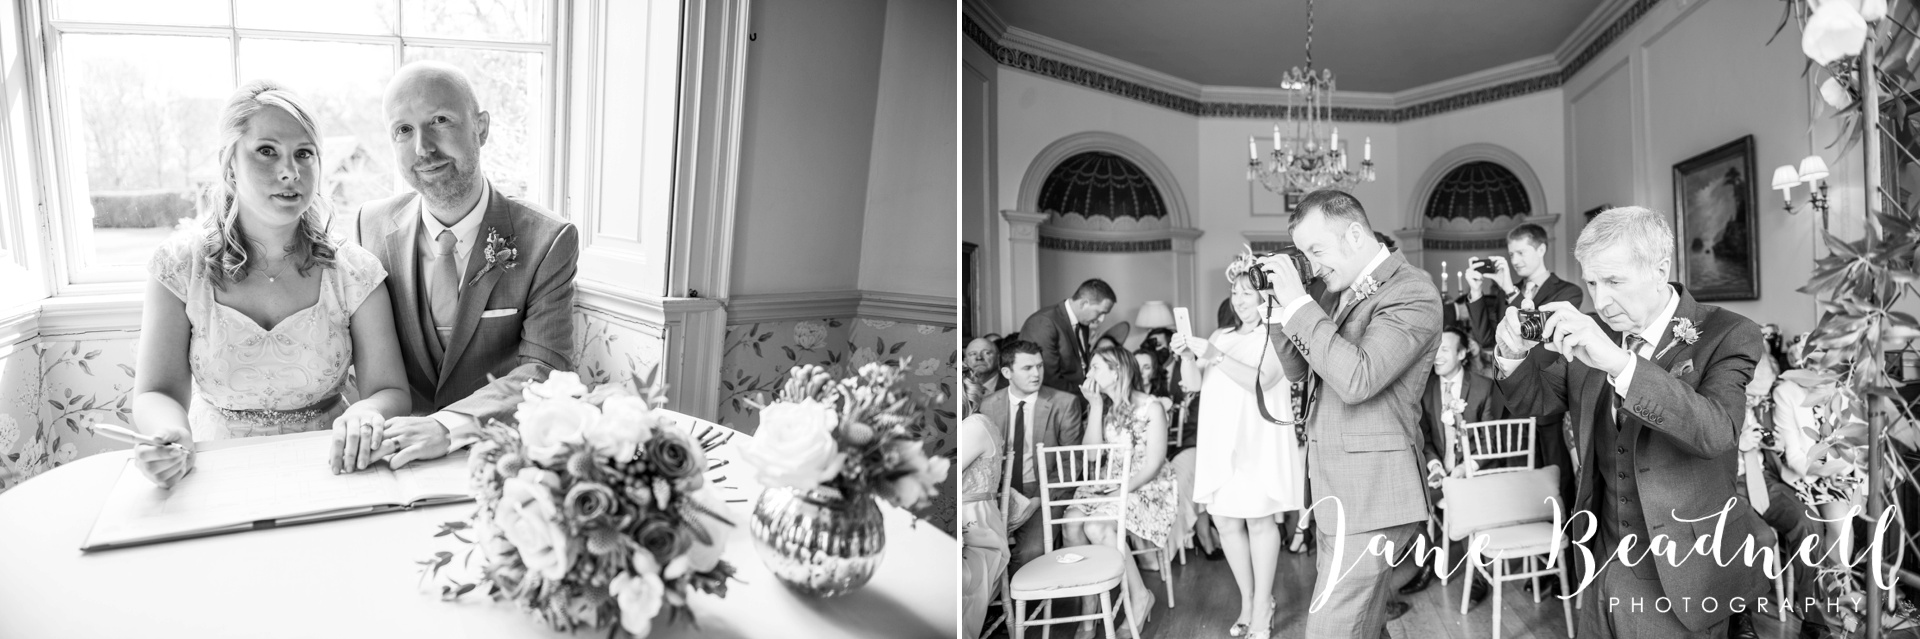 Middleton Lodge wedding photography by fine art wedding photographer Jane Beadnell_0045